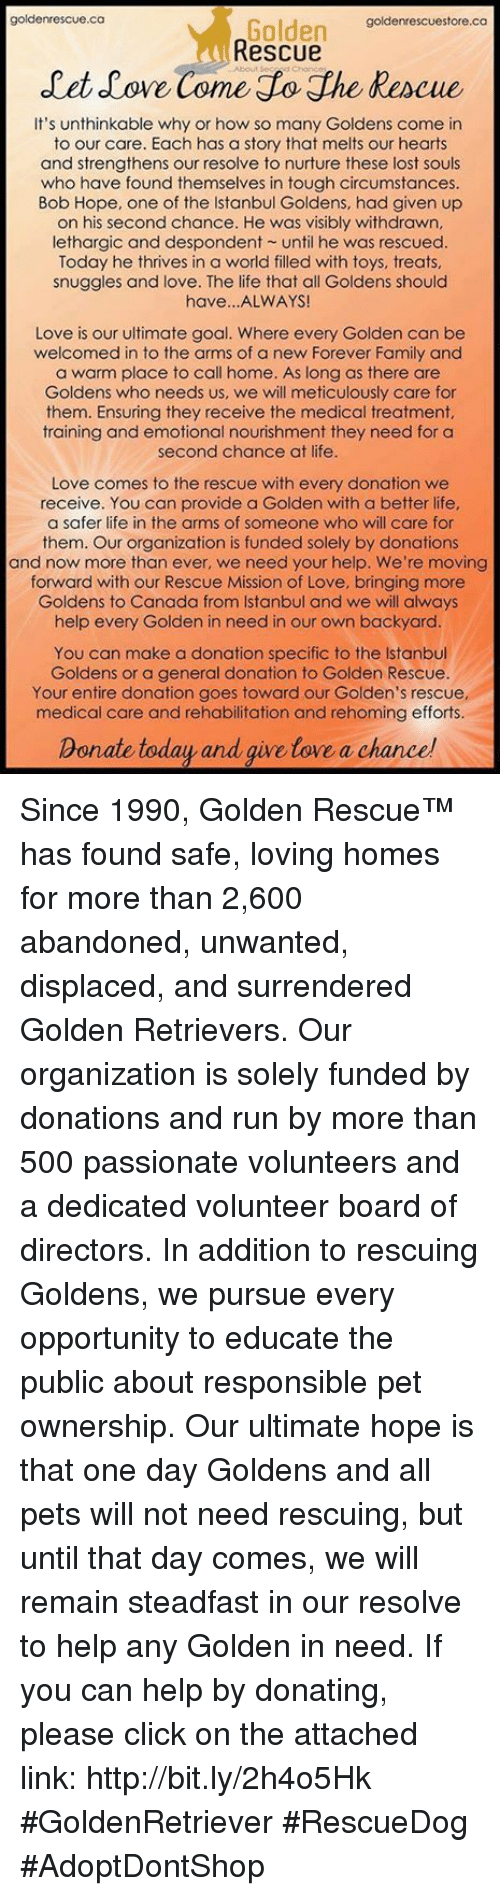 Click, Family, and Life: goldenrescue.ca  goldenrescuestore.ca  Golden  Rescue  let ove Come Lo he Rescue  It's unthinkable why or how so many Goldens come in  to our care. Each has a story that melts our hearts  and strengthens our resolve to nurture these lost souls  who have found themselves in tough circumstances  Bob Hope, one of the Istanbul Goldens, had given up  on his second chance. He was visibly withdrawn,  lethargic and despondent until he was rescued.  Today he thrives in a world filled with toys, treats  snuggles and love. The life that all Goldens should  have...ALWAYS  Love is our ultimate goal. Where every Golden can be  welcomed in to the arms of a new Forever Family and  a warm place to call home. As long as there are  Goldens who needs us, we will meticulously care for  them. Ensuring they receive the medical treatment,  training and emotional nourishment they need for a  second chance at life  Love comes to the rescue with every donation we  receive. You can provide a Golden with a better life  a safer life in the arms of someone who will care for  them. Our organization is funded solely by donations  and now more than ever, we need your help. We're moving  forward with our Rescue Mission of Love, bringing more  Goldens to Canada from Istanbul and we will always  help every Golden in need in our own backyard  You can make a donation specific to the Istanbul  Goldens or a general donation to Golden Rescue.  Your entire donation goes toward our Golden's rescue,  medical care and rehabilitation and rehoming efforts.  Donate today and qive love a chance Since 1990, Golden Rescue™ has found safe, loving homes for more than 2,600 abandoned, unwanted, displaced, and surrendered Golden Retrievers. Our organization is solely funded by donations and run by more than 500 passionate volunteers and a dedicated volunteer board of directors. In addition to rescuing Goldens, we pursue every opportunity to educate the public about responsible pet ownership.  Our